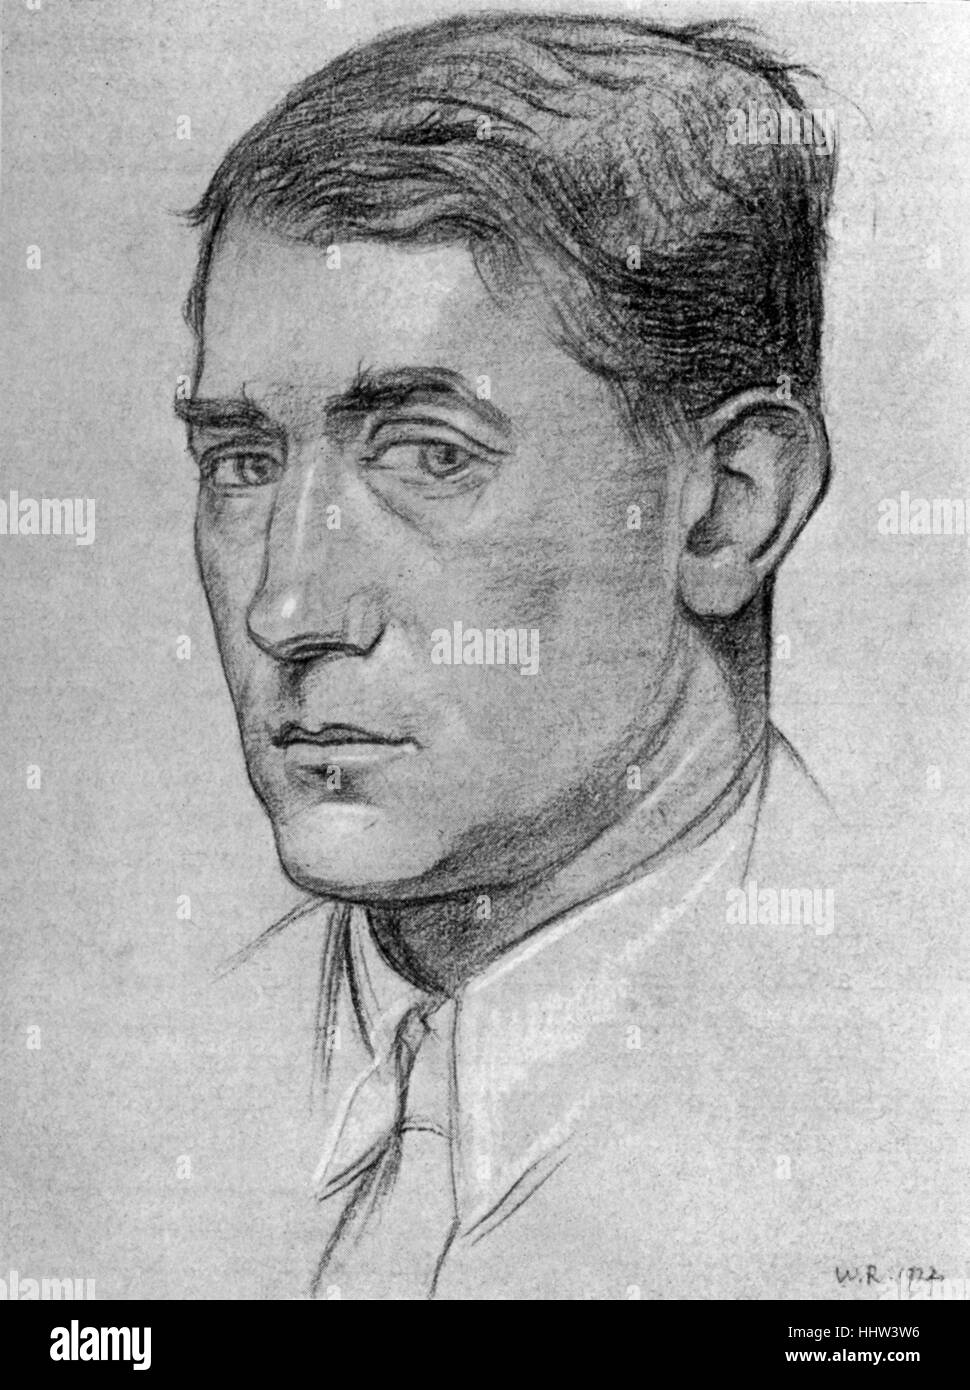 John Collings Squire - c. 1924. British poet, writer, historian, and influential literary editor of the post-World - Stock Image